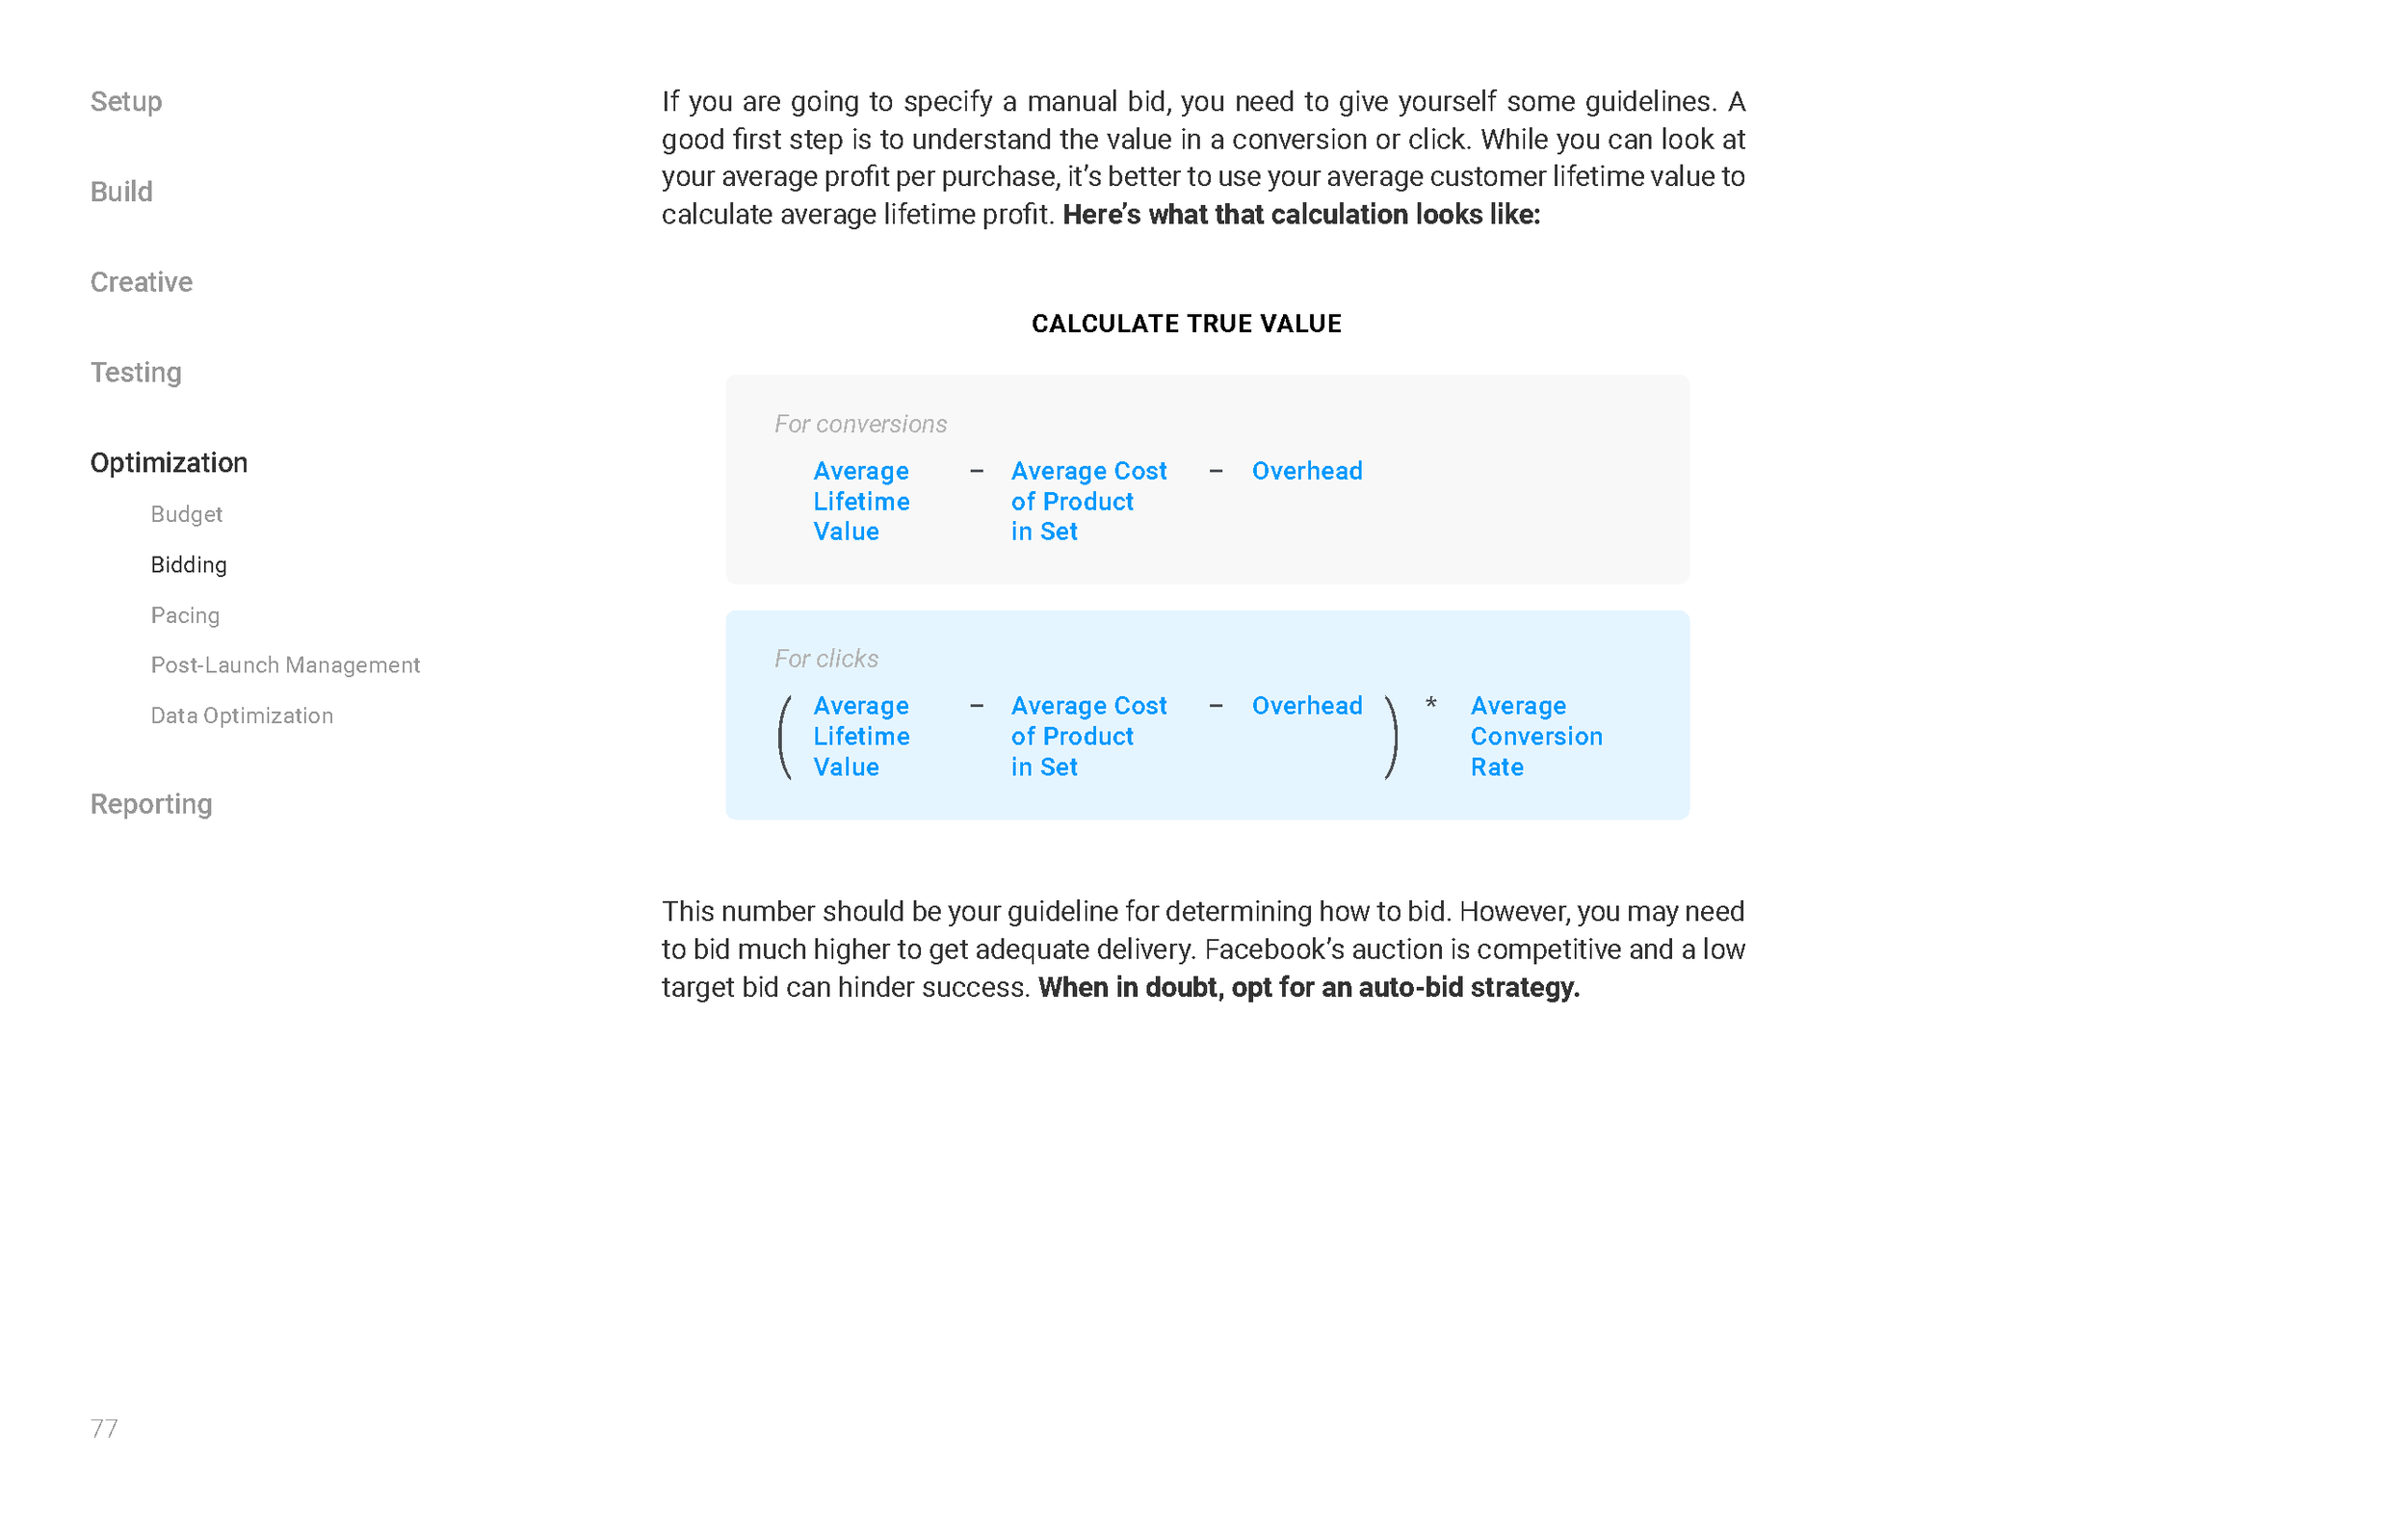 retail playbook _Page_077.png